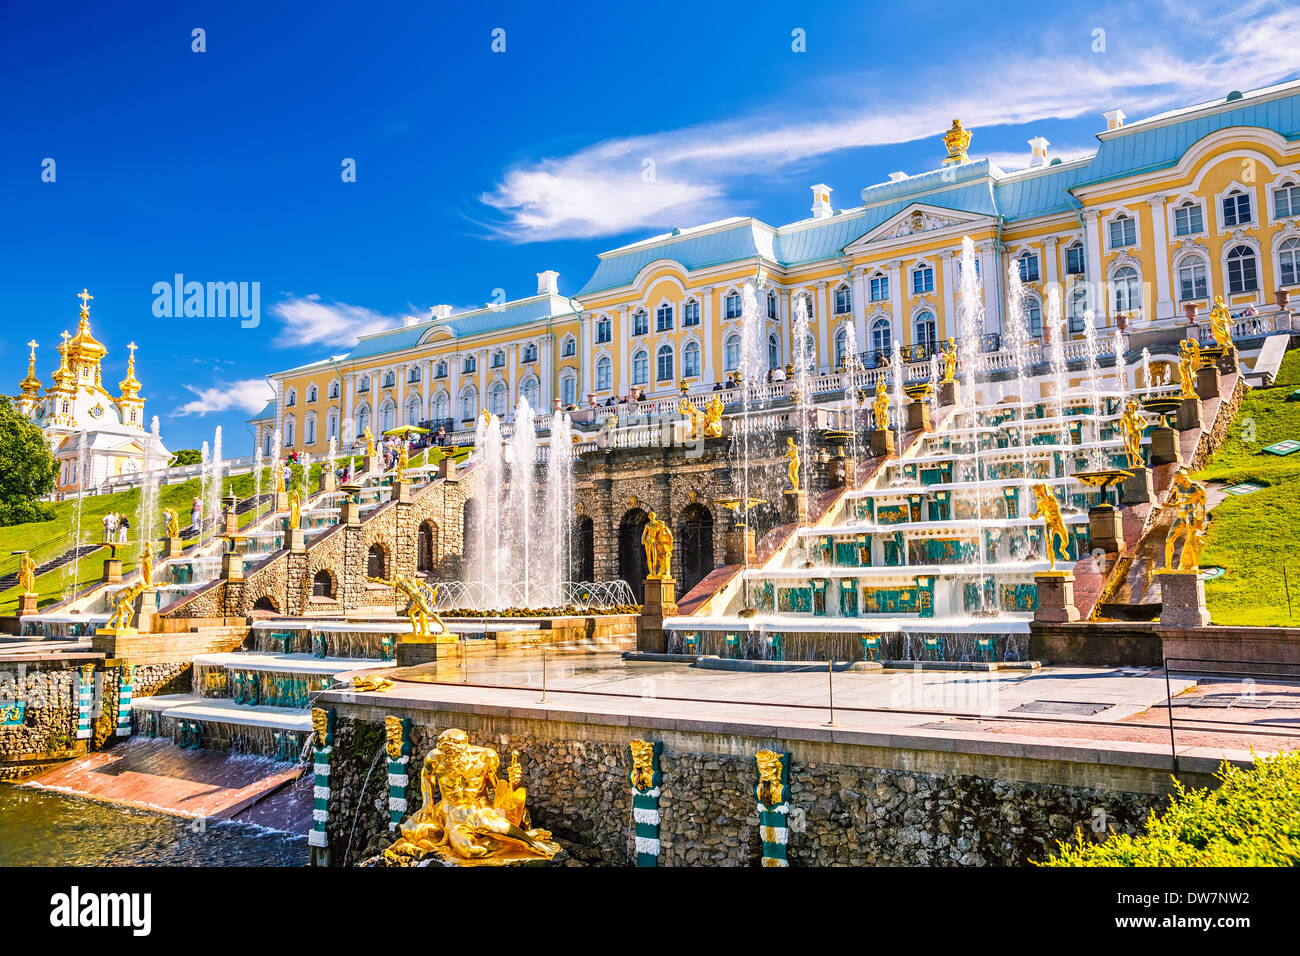 Grand Cascade in Peterhof, St Petersburg - Stock Image